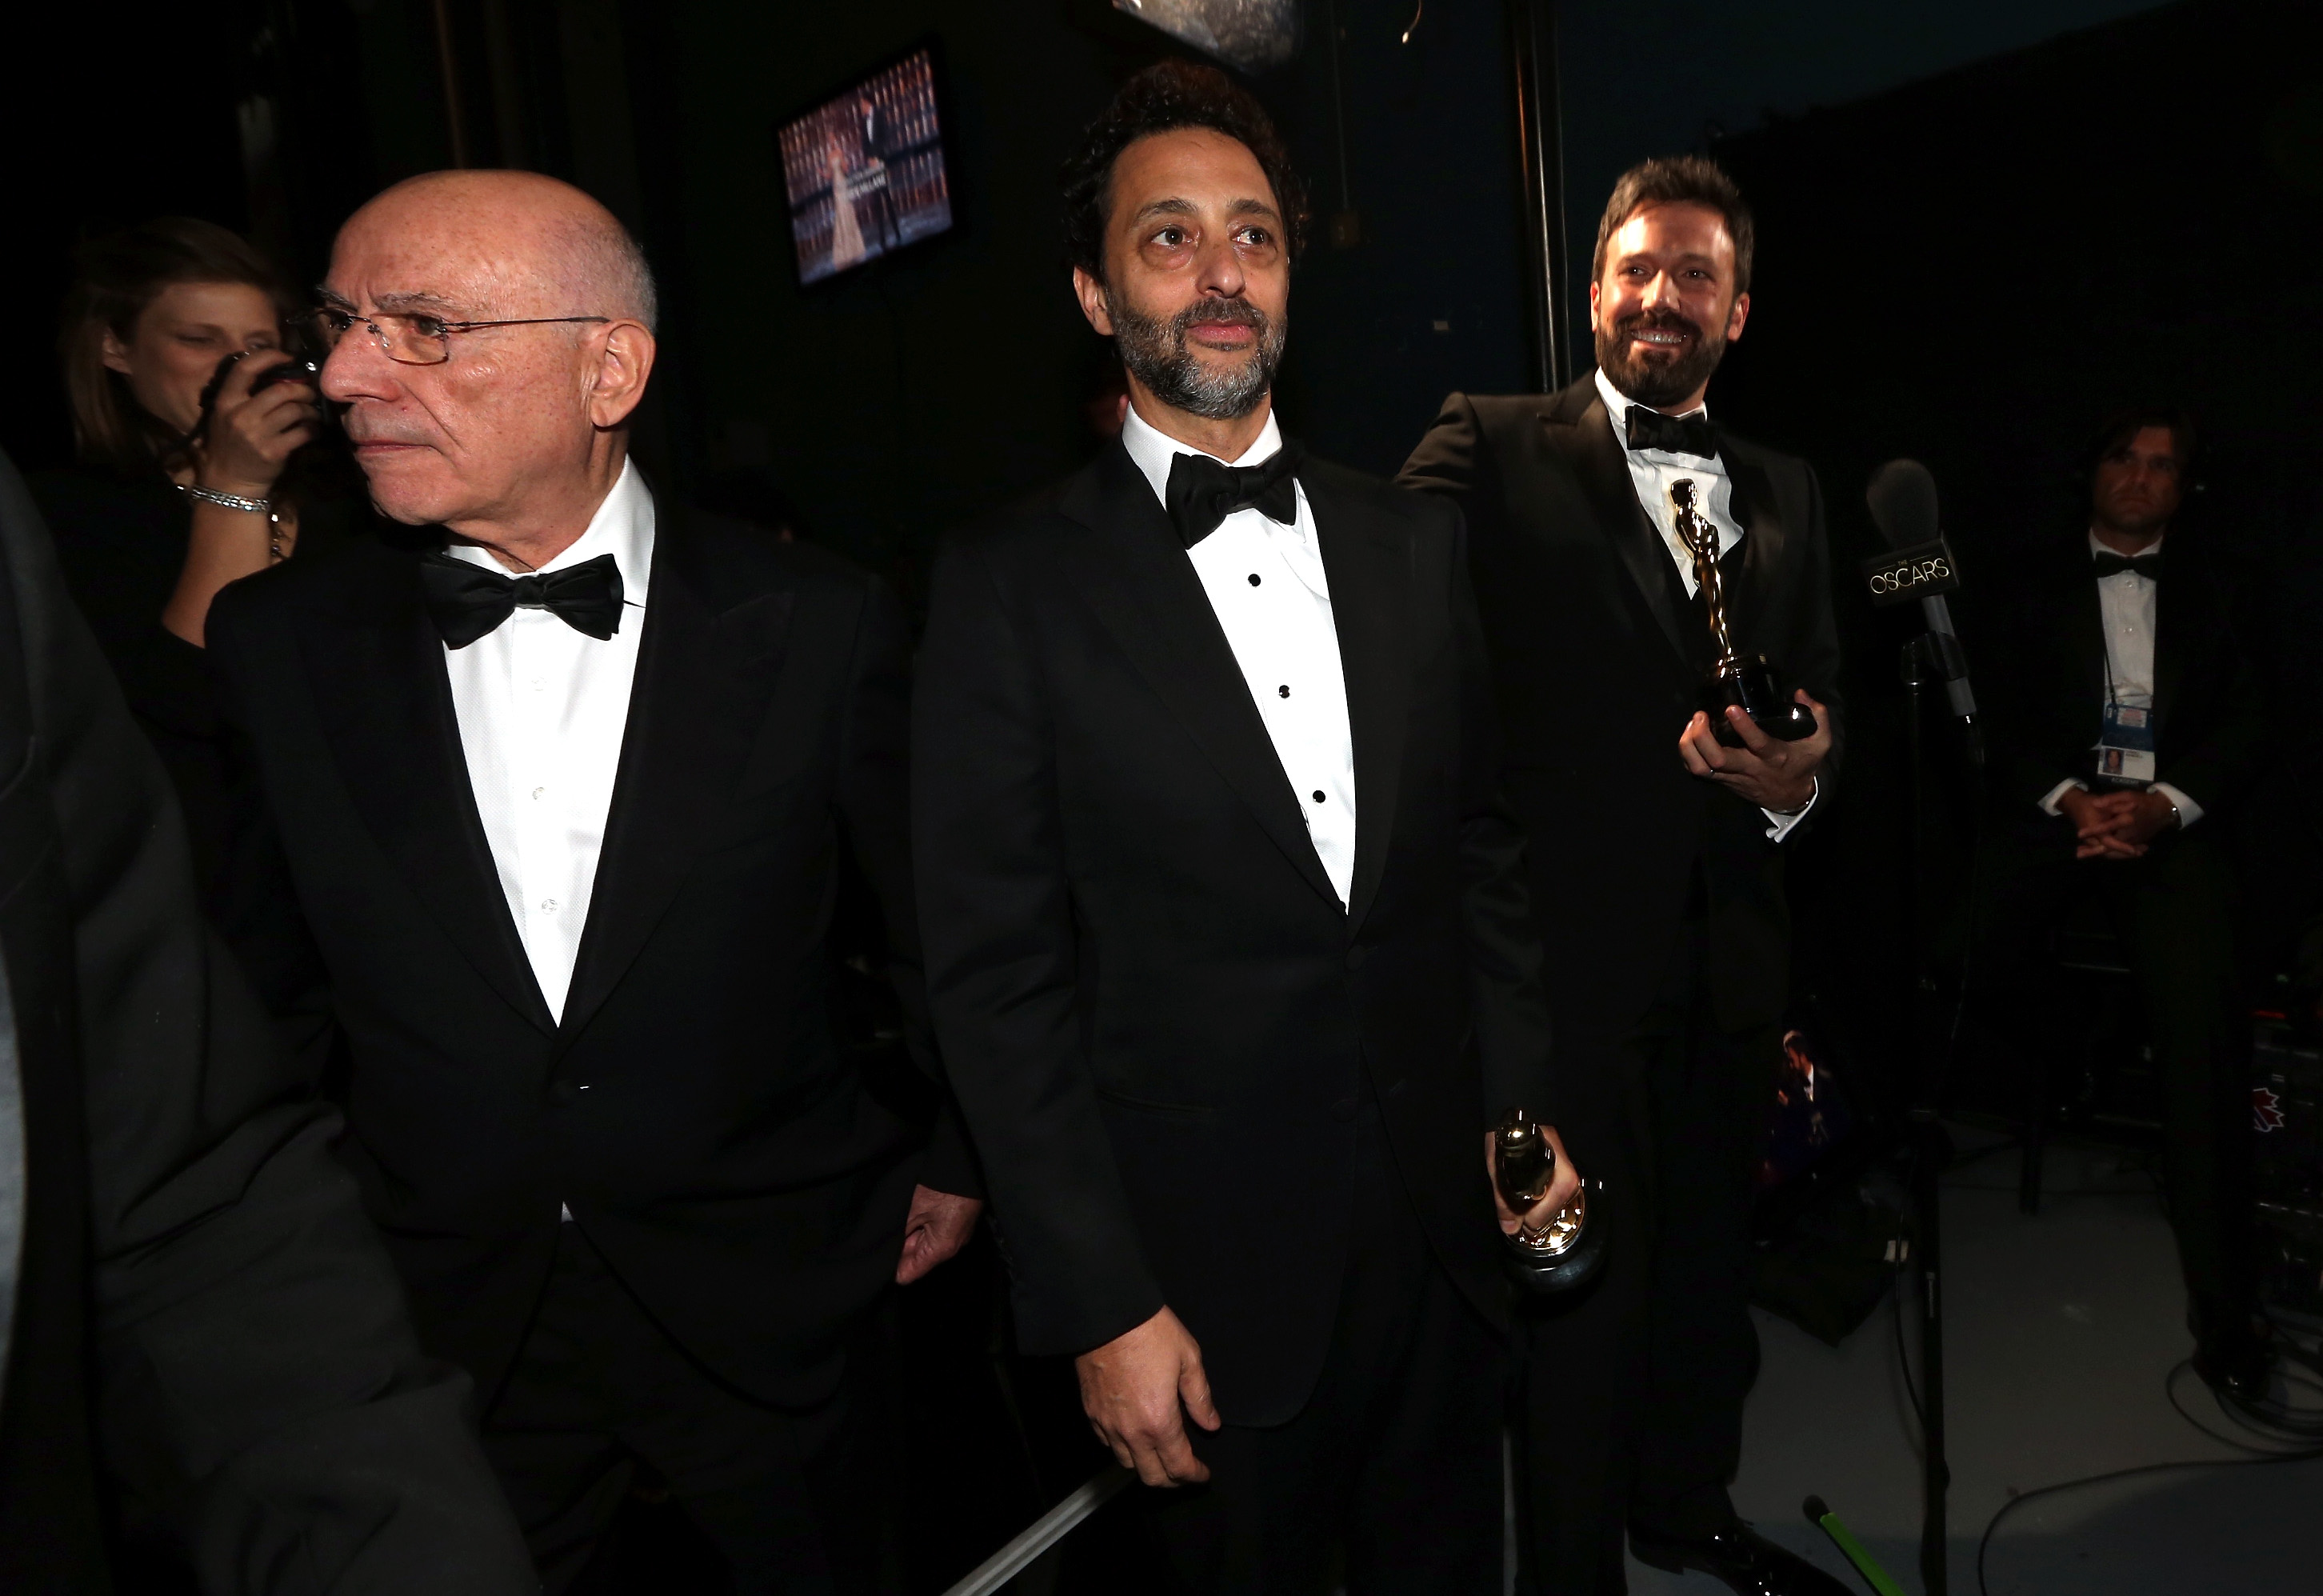 Grant Heslov, Alan Arkin, and Ben Affleck backstage at the 2013 Oscars.